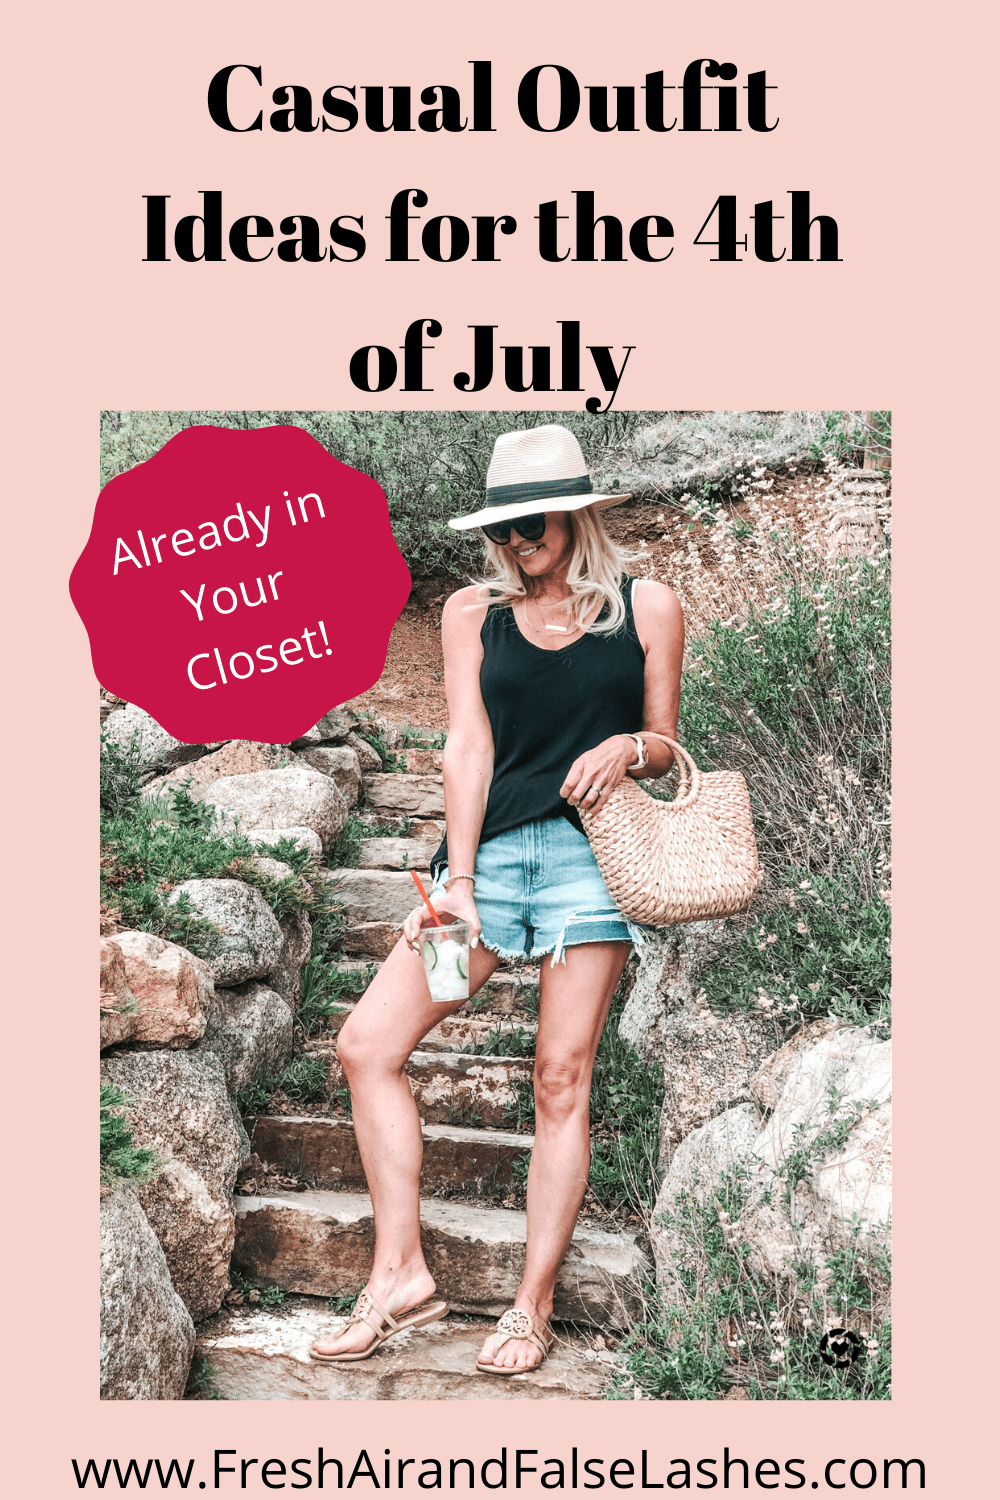 Outfit ideas for the 4th of July.